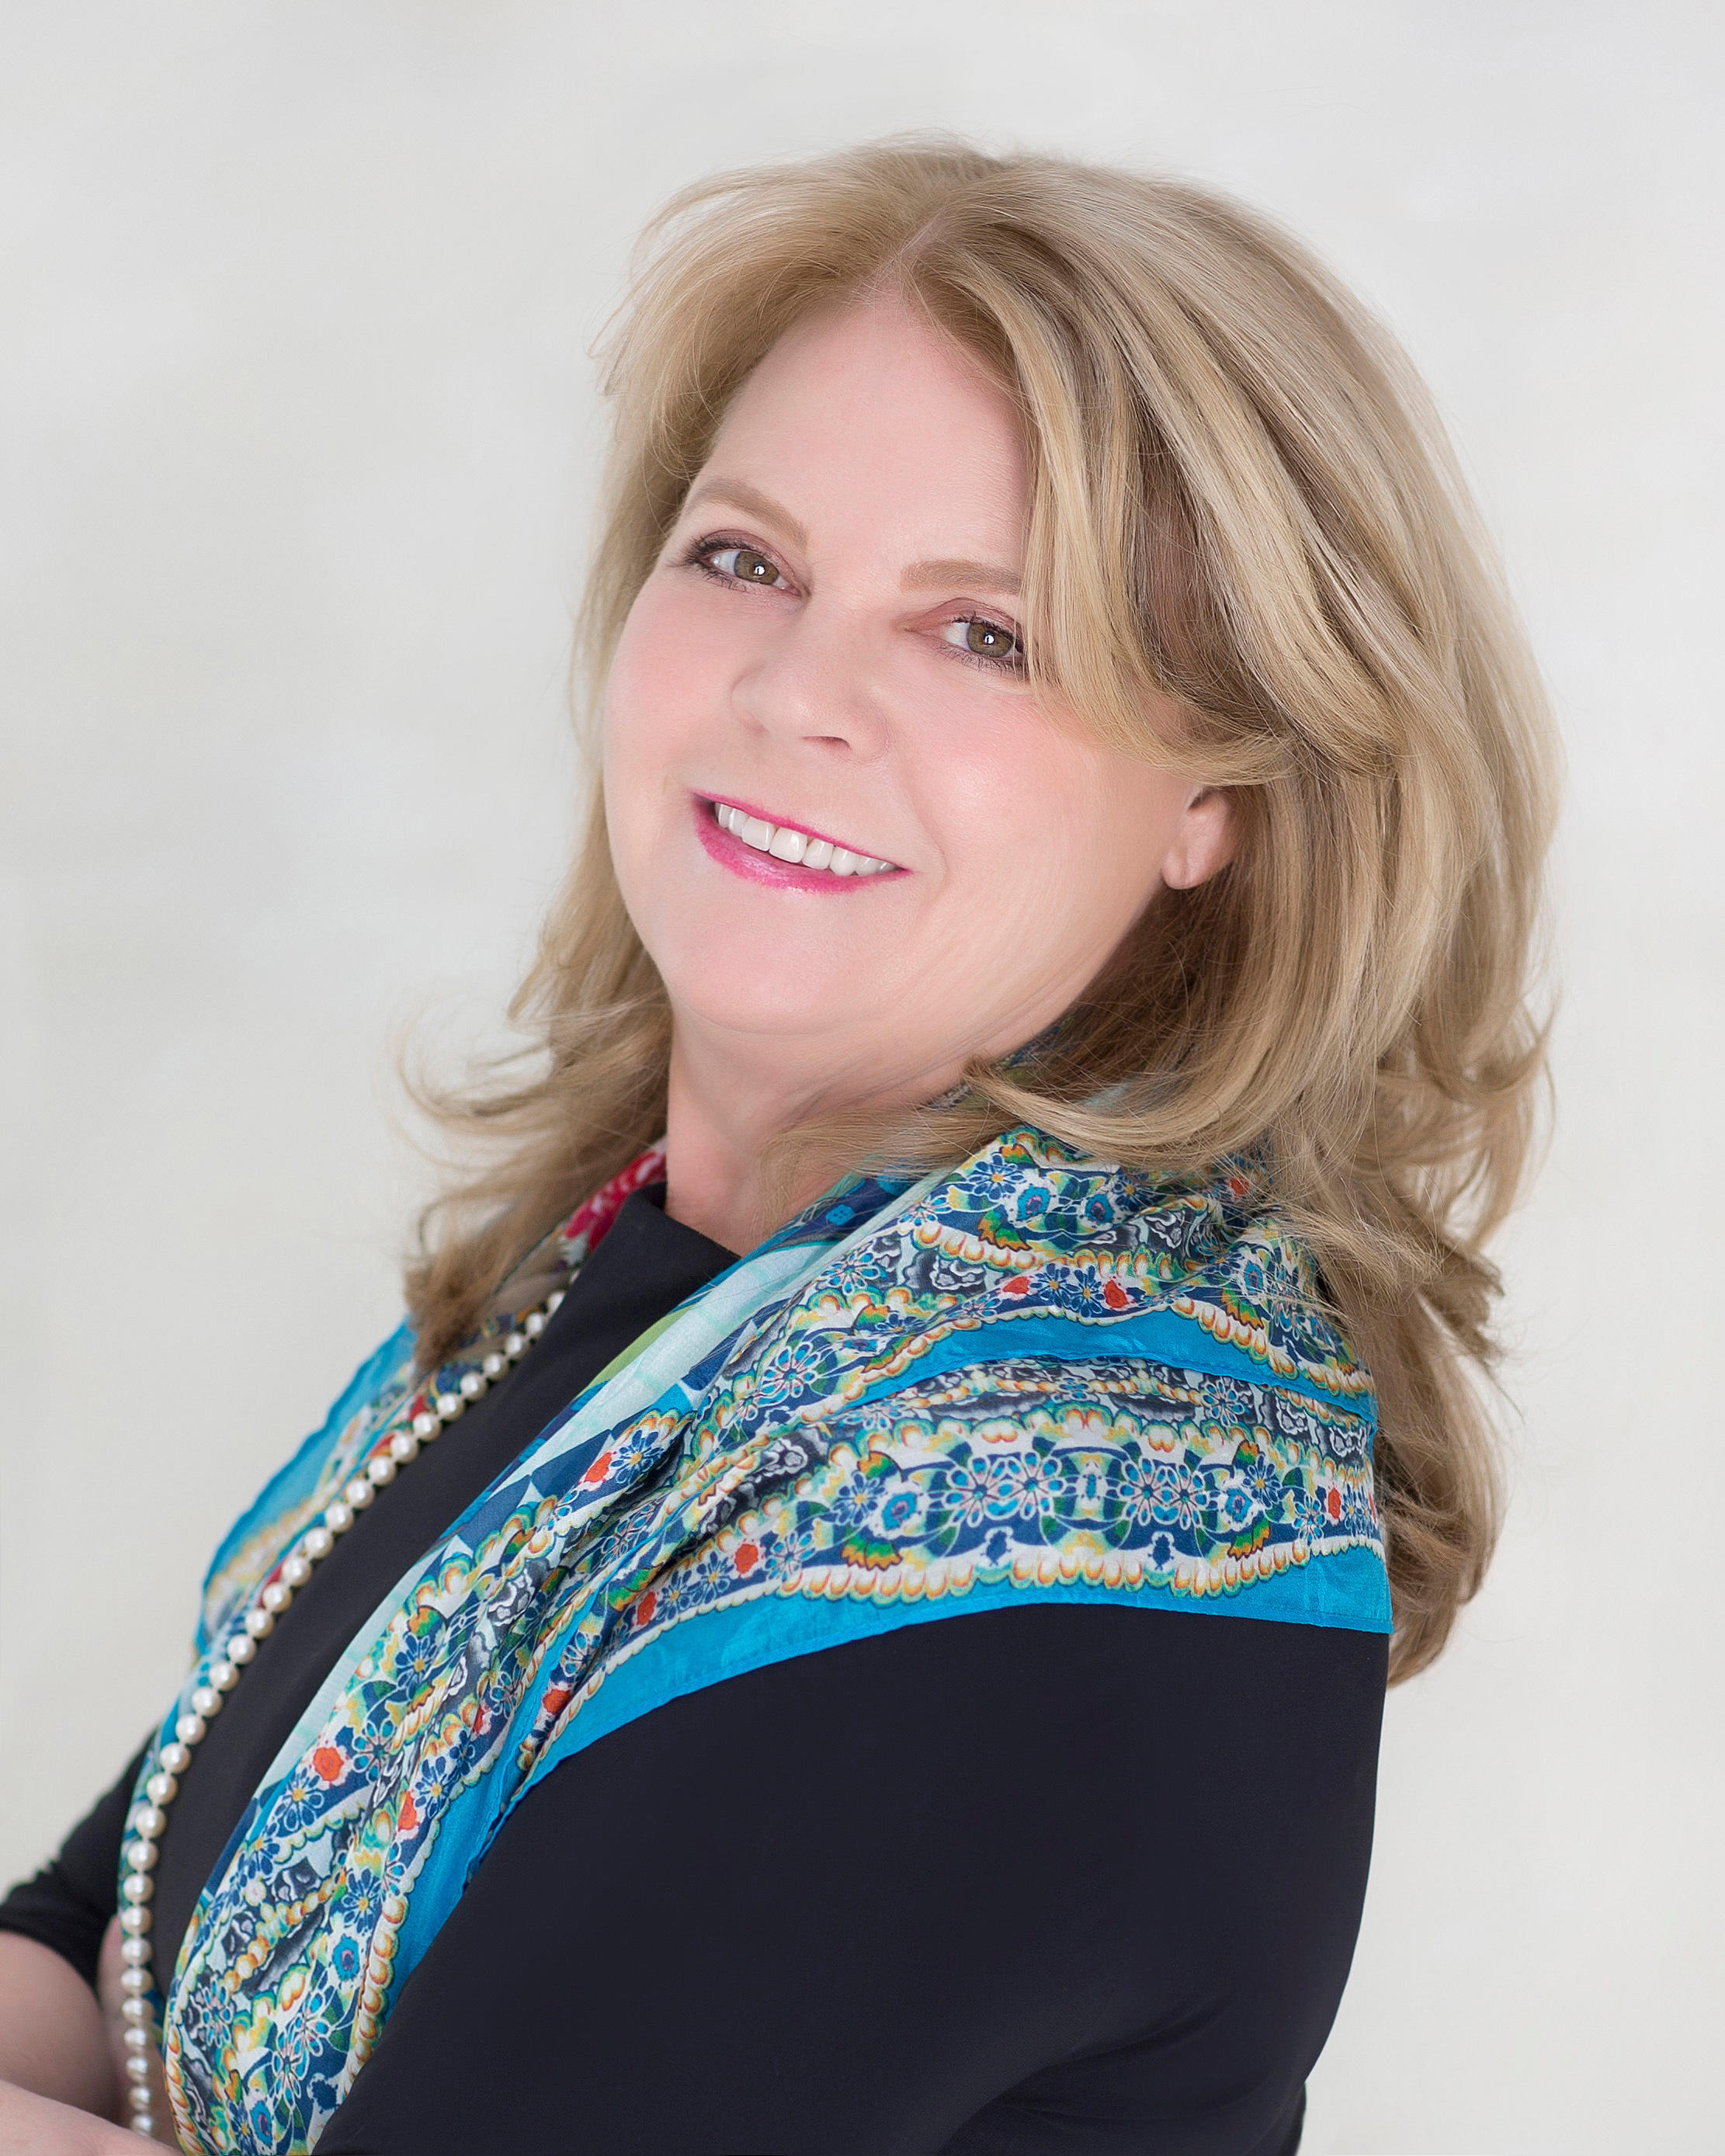 Nancy holds the designation of a Certified Elder Law Attorney (CELA), awarded by the National Elder Law Foundation as accredited by the American Bar Association. She is a member of the Elder Law and T